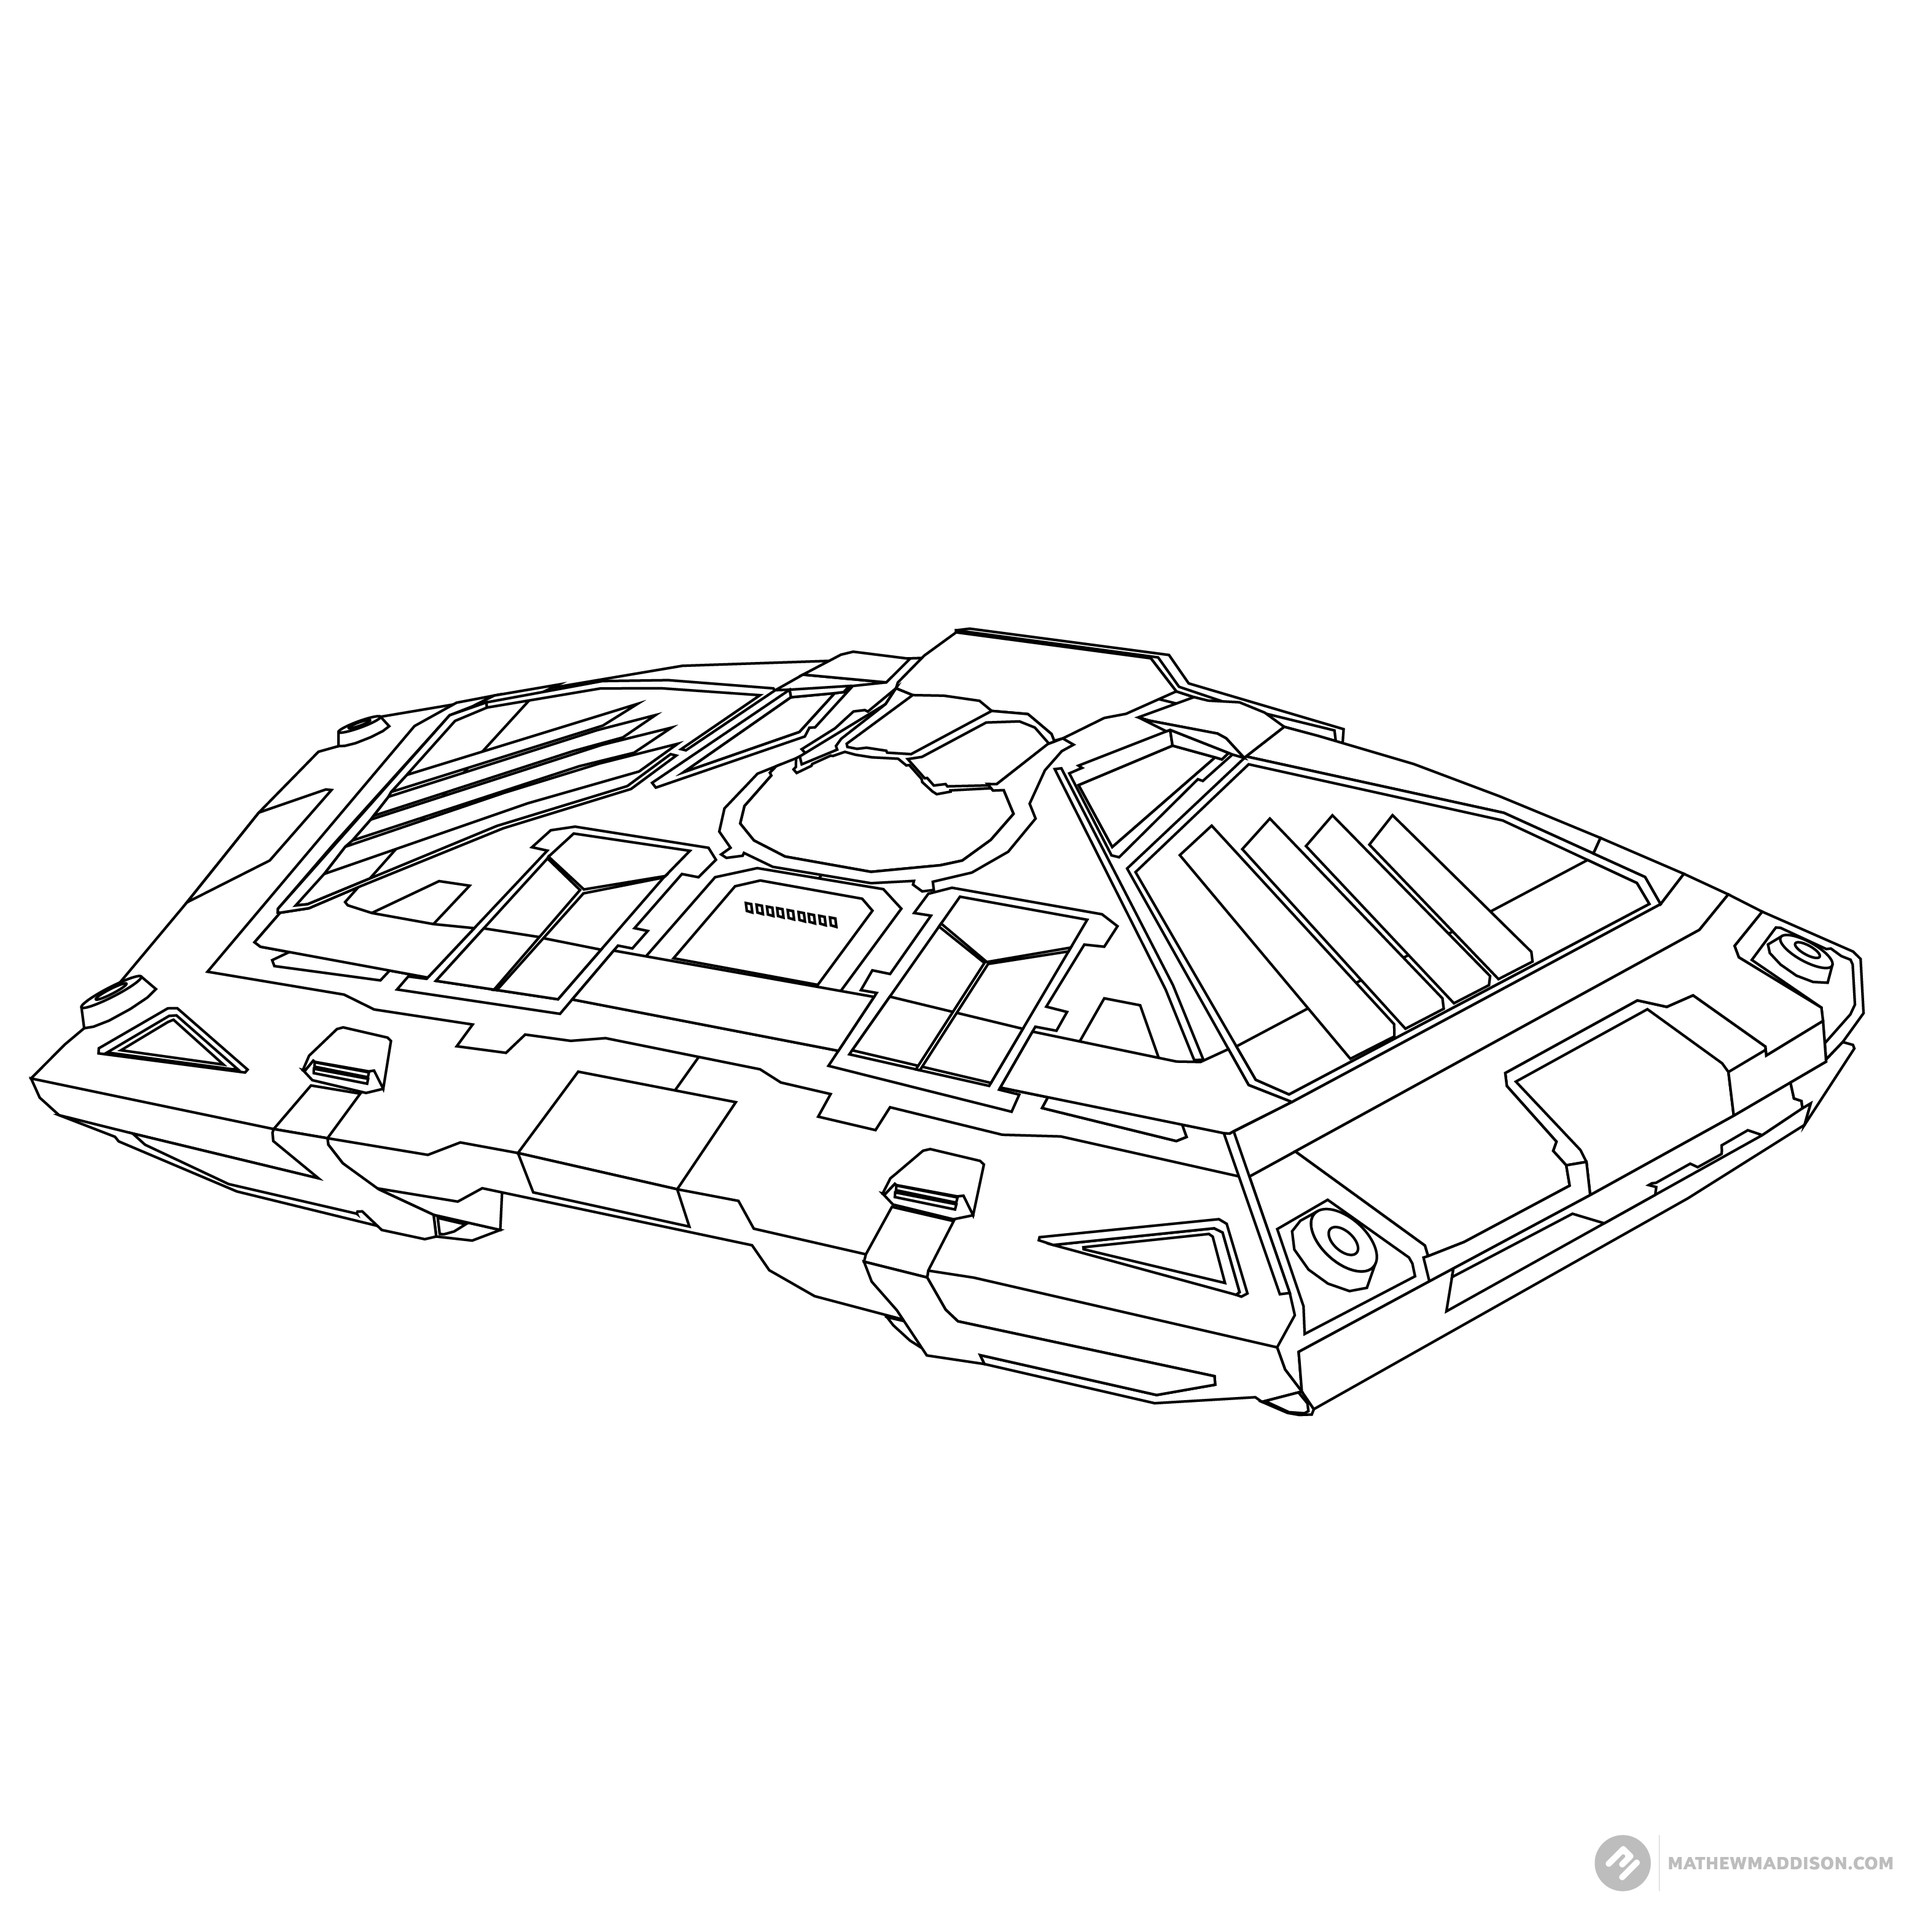 Mathew maddison elite ship no colours by mathew maddsion 13